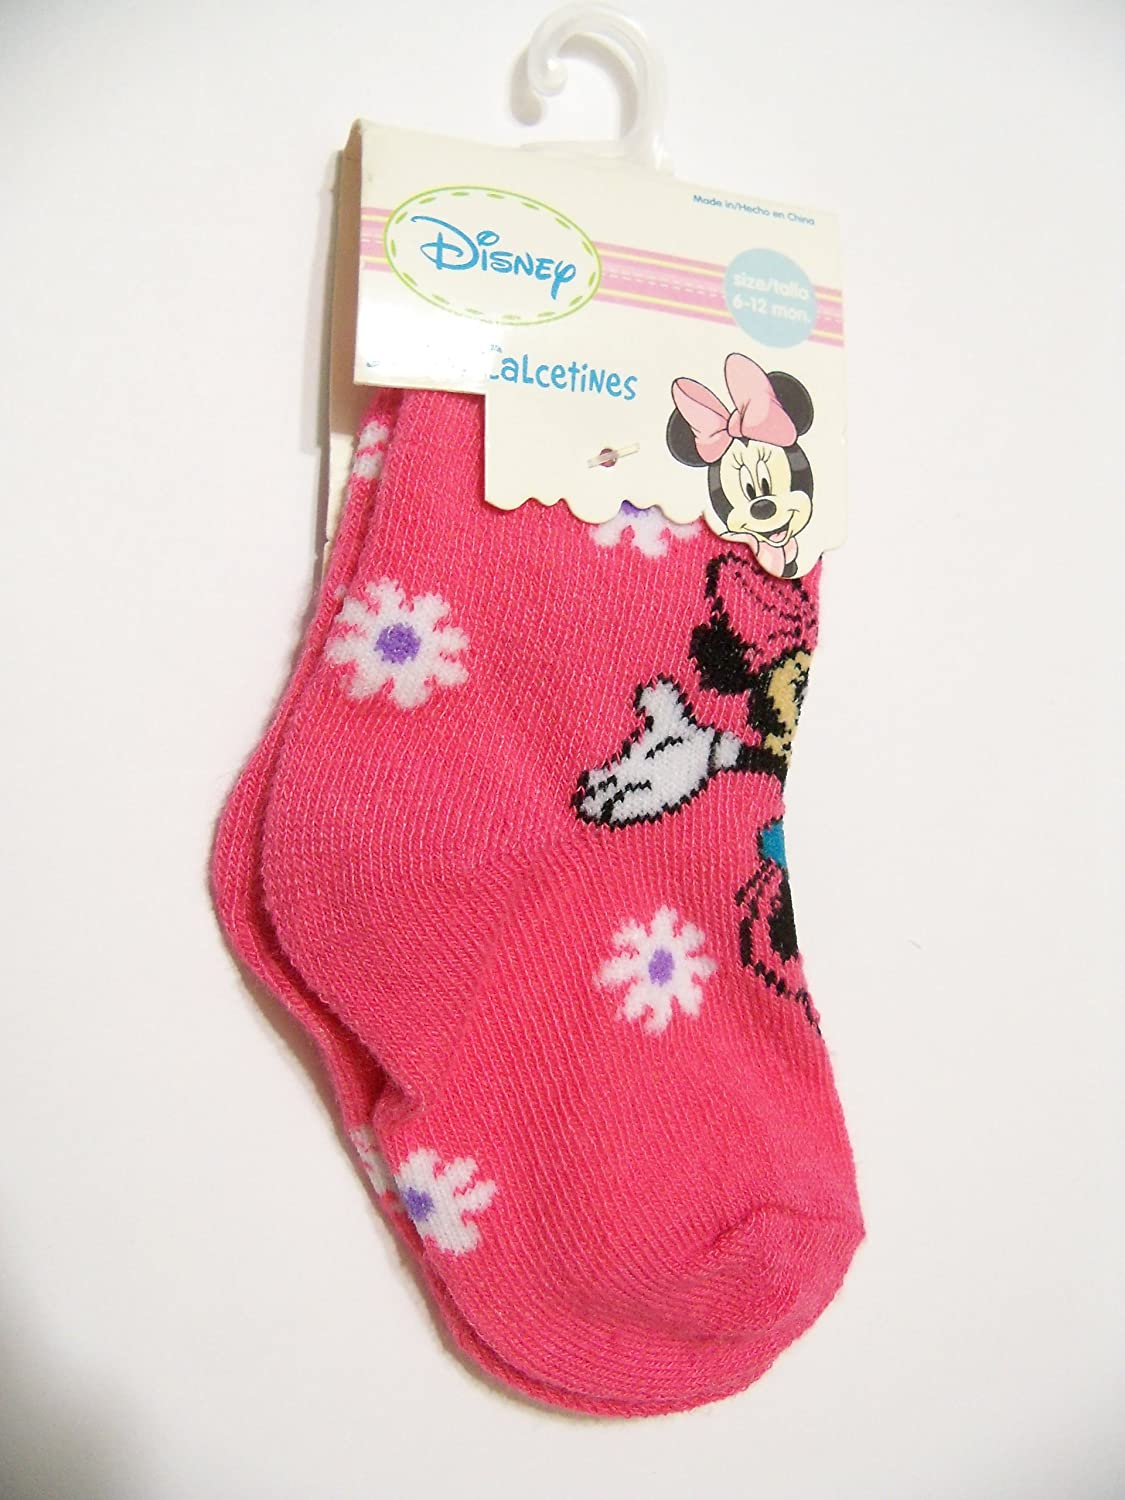 Amazon.com: Disney Minnie Mouse Socks ~ 6-12 Months (Skipping Amongst the Flowers): Baby